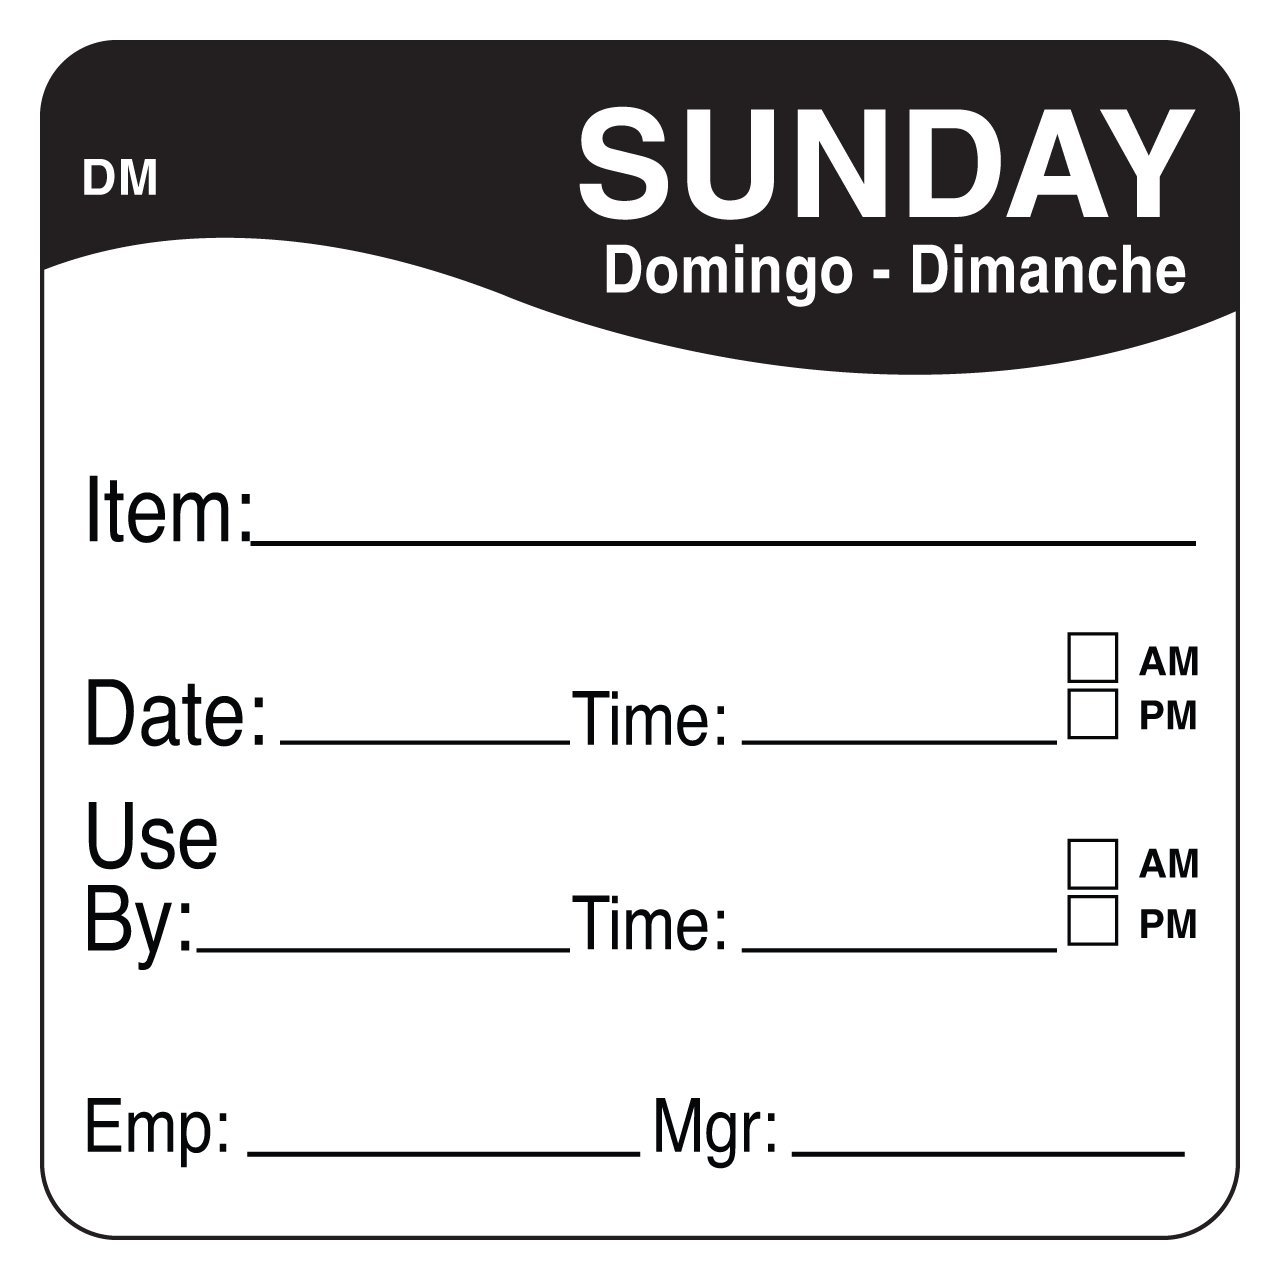 DayMark Safety Systems IT1100537 DayMark DissolveMark Day of the Week Trilingual Dissolvable Label, Item/Date/Use By, 2'' x 2'', Black (Pack of 250)